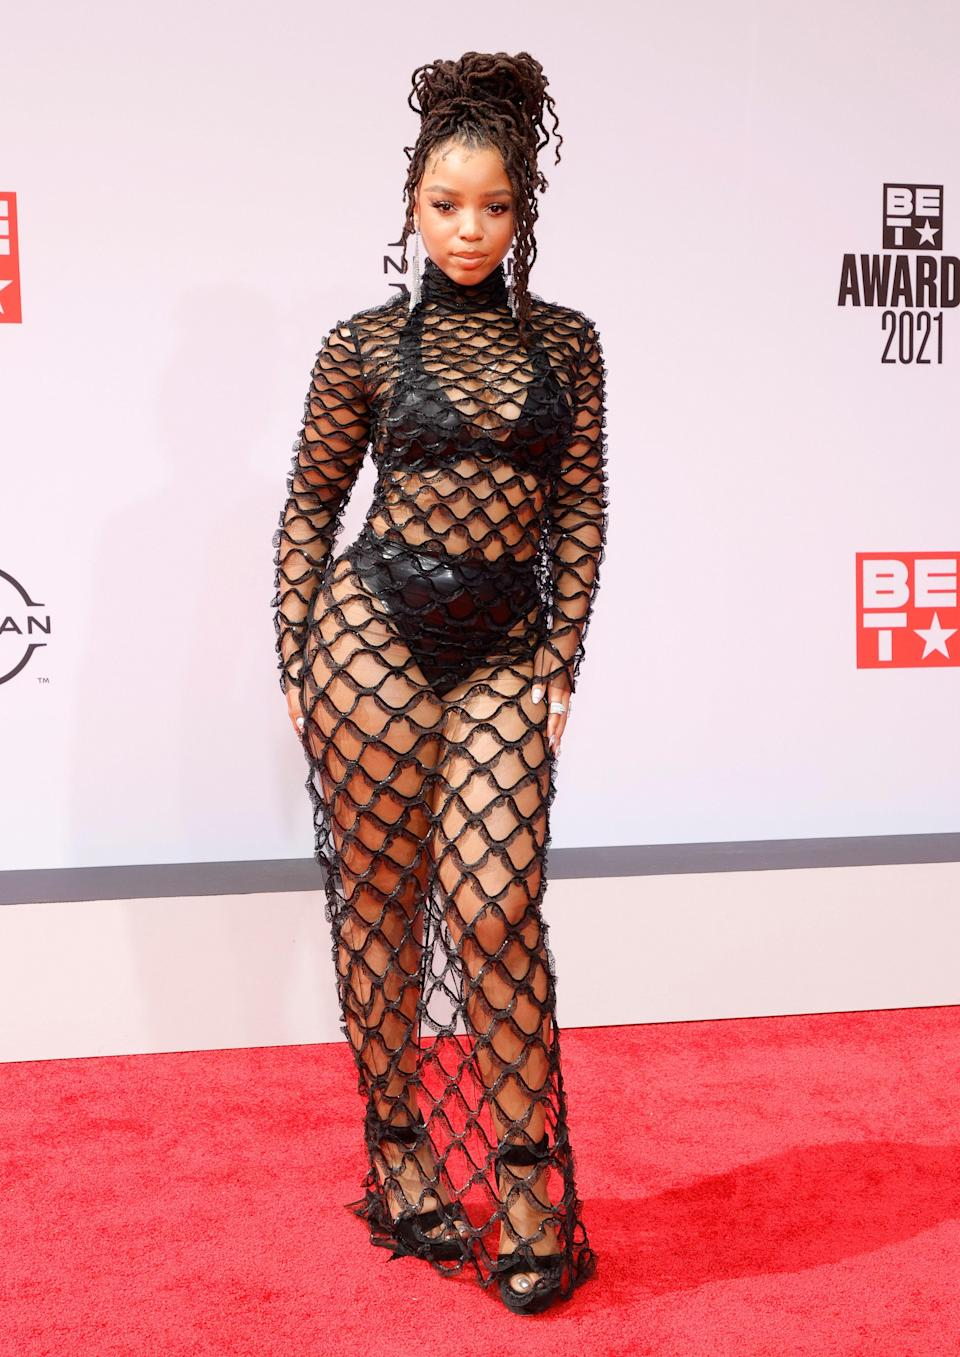 One half of Chloe x Halle, Chloe Bailey went solo but turned up the temperature times two on the red carpet when she turned up in a sheer mesh gown from Valentino.